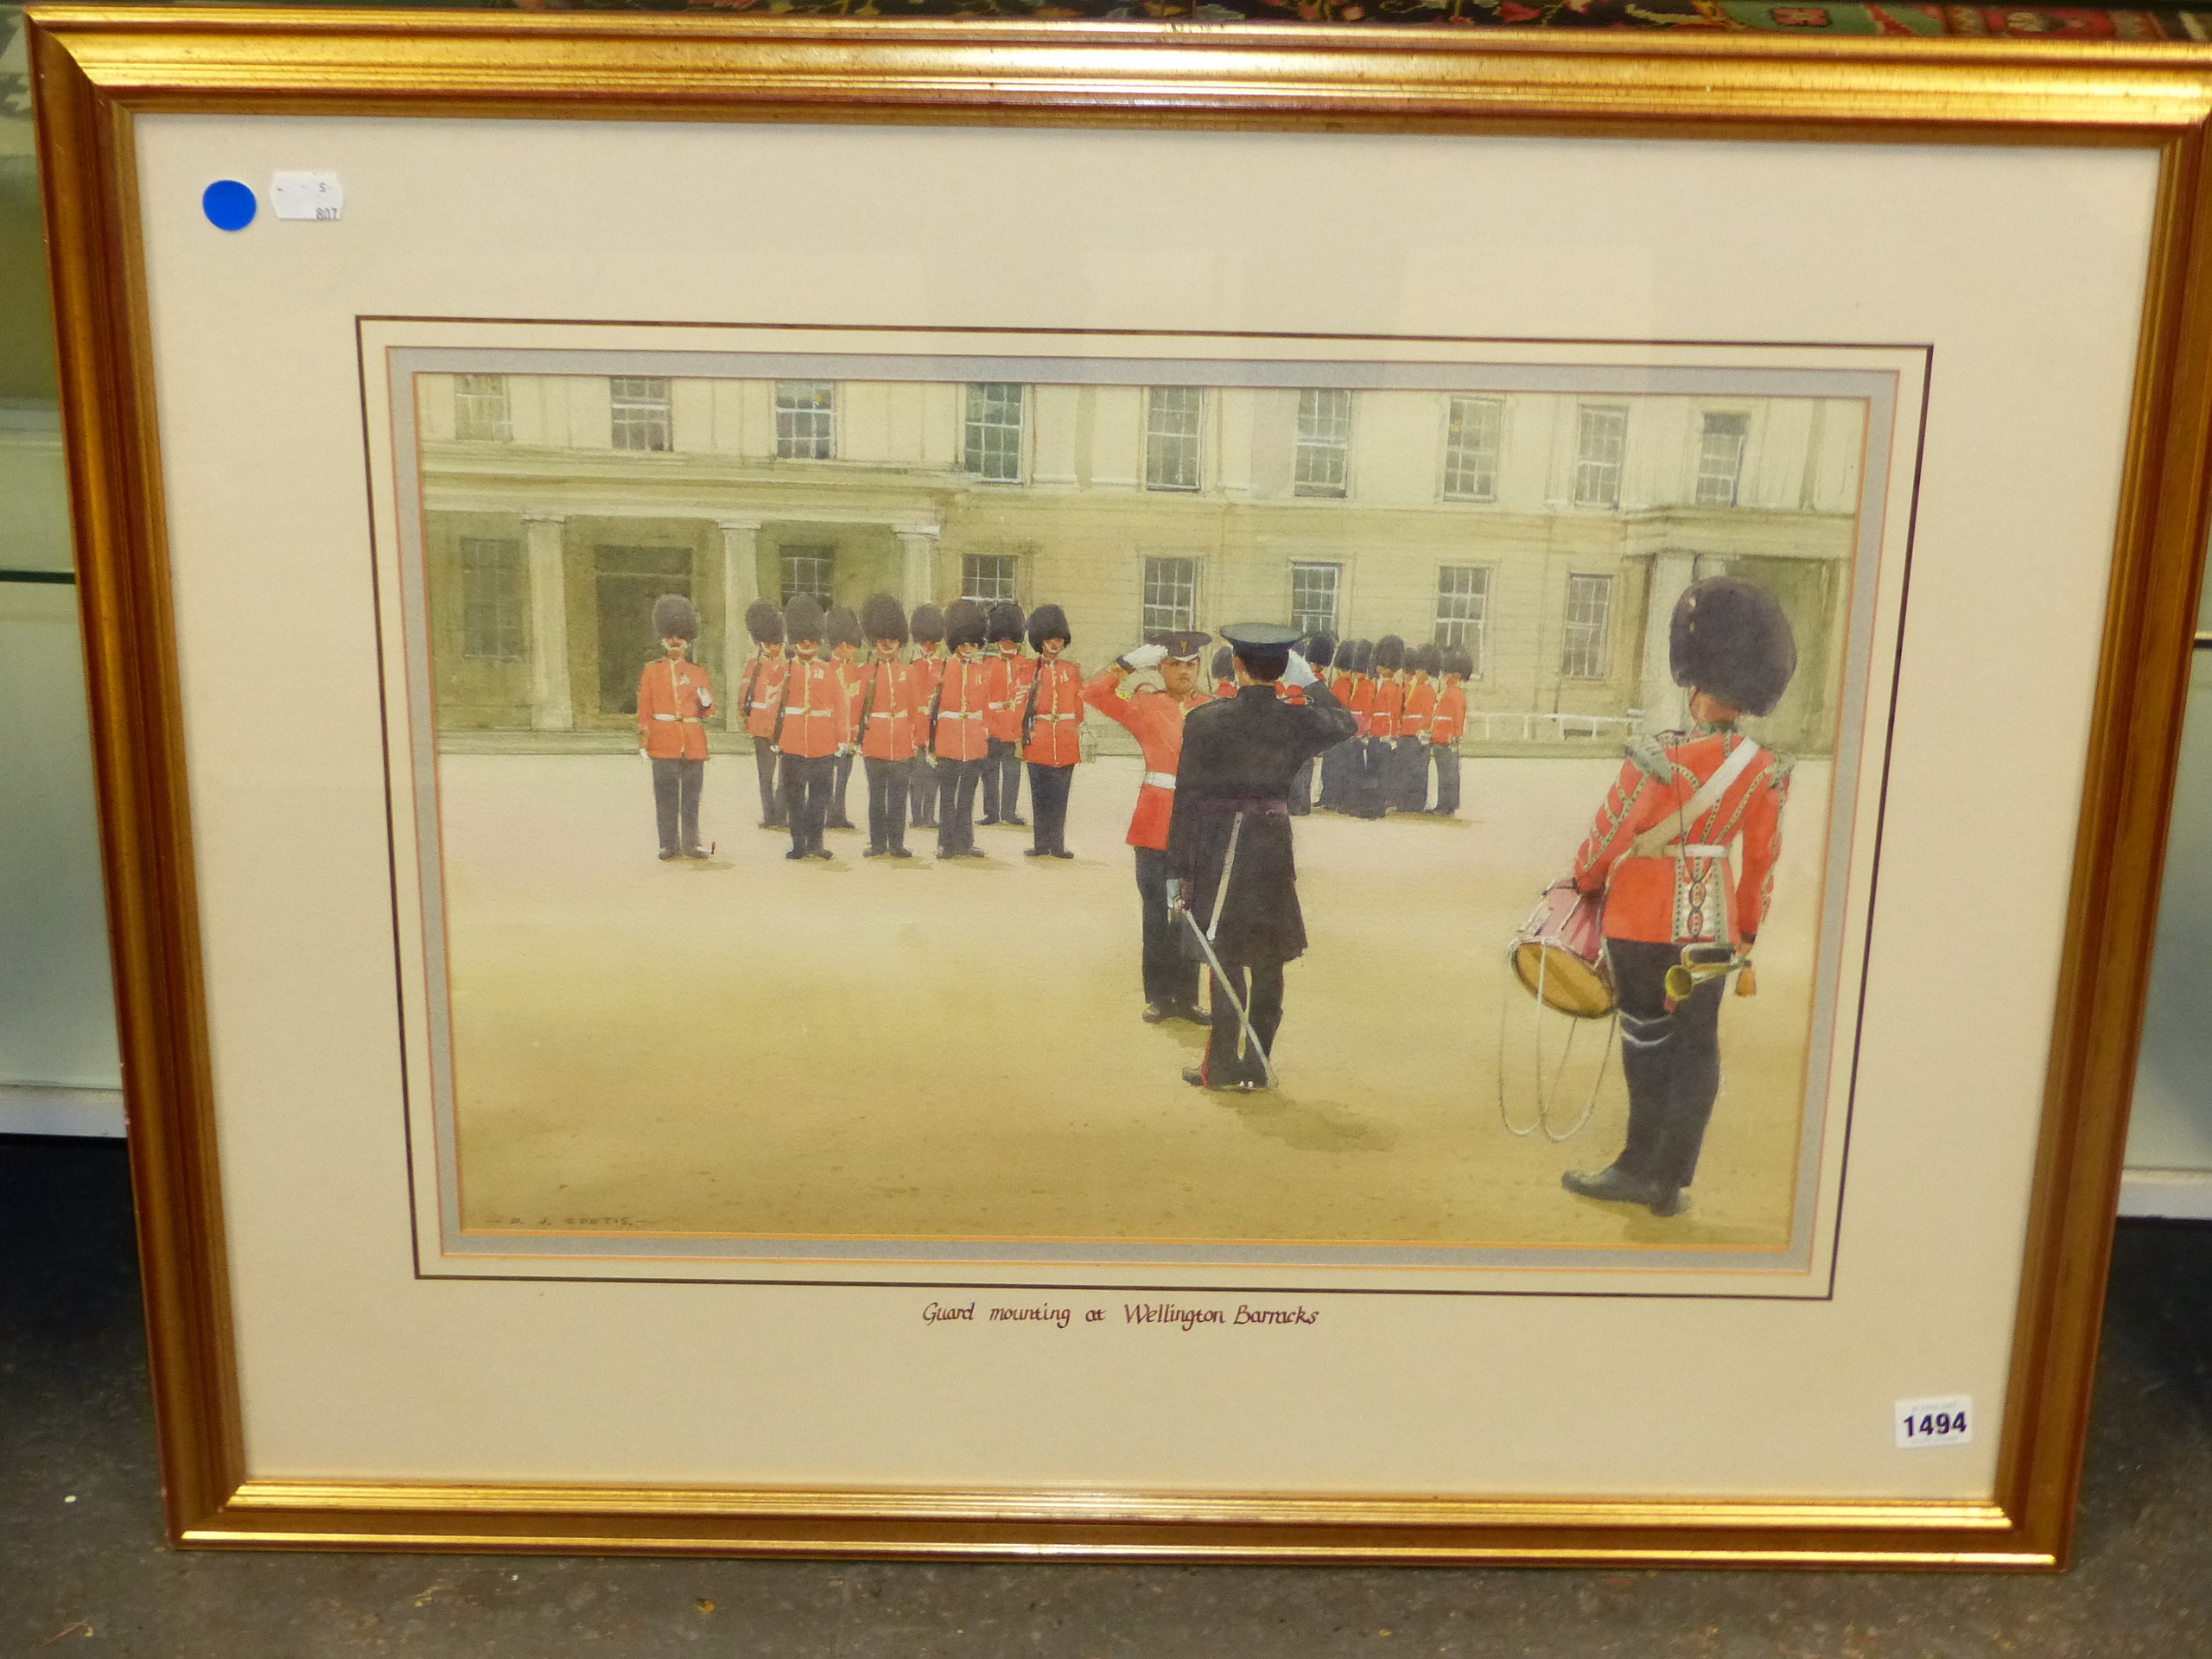 D.J CURTIS (1948 - ) ARR. GUARD MOUNTING AT WELLINGTON BARRACKS. SIGNED WATERCOLOUR GALLERY LABEL - Image 2 of 7